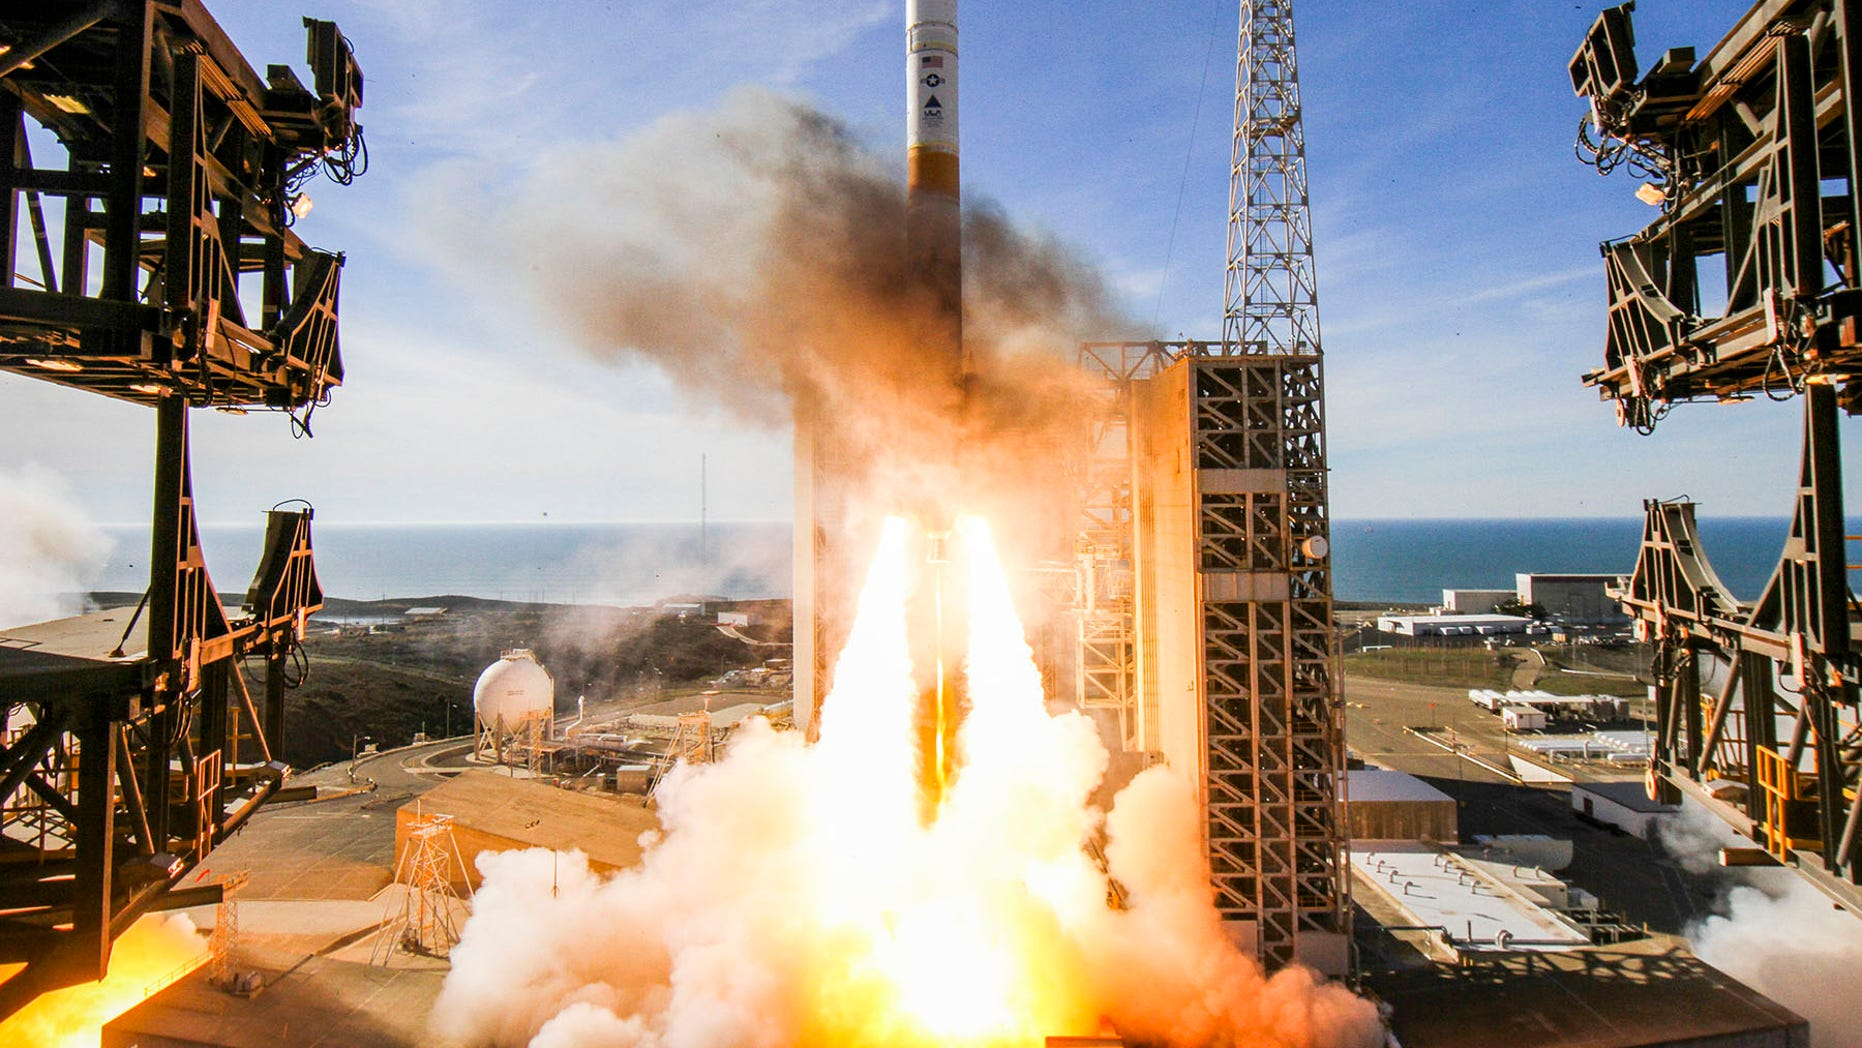 A United Launch Alliance Delta IV rocket carrying the classified NROL-47 spy satellite launches from Space Launch Complex-6 at Vandenberg Air Force Base in California on Jan. 12, 2018.